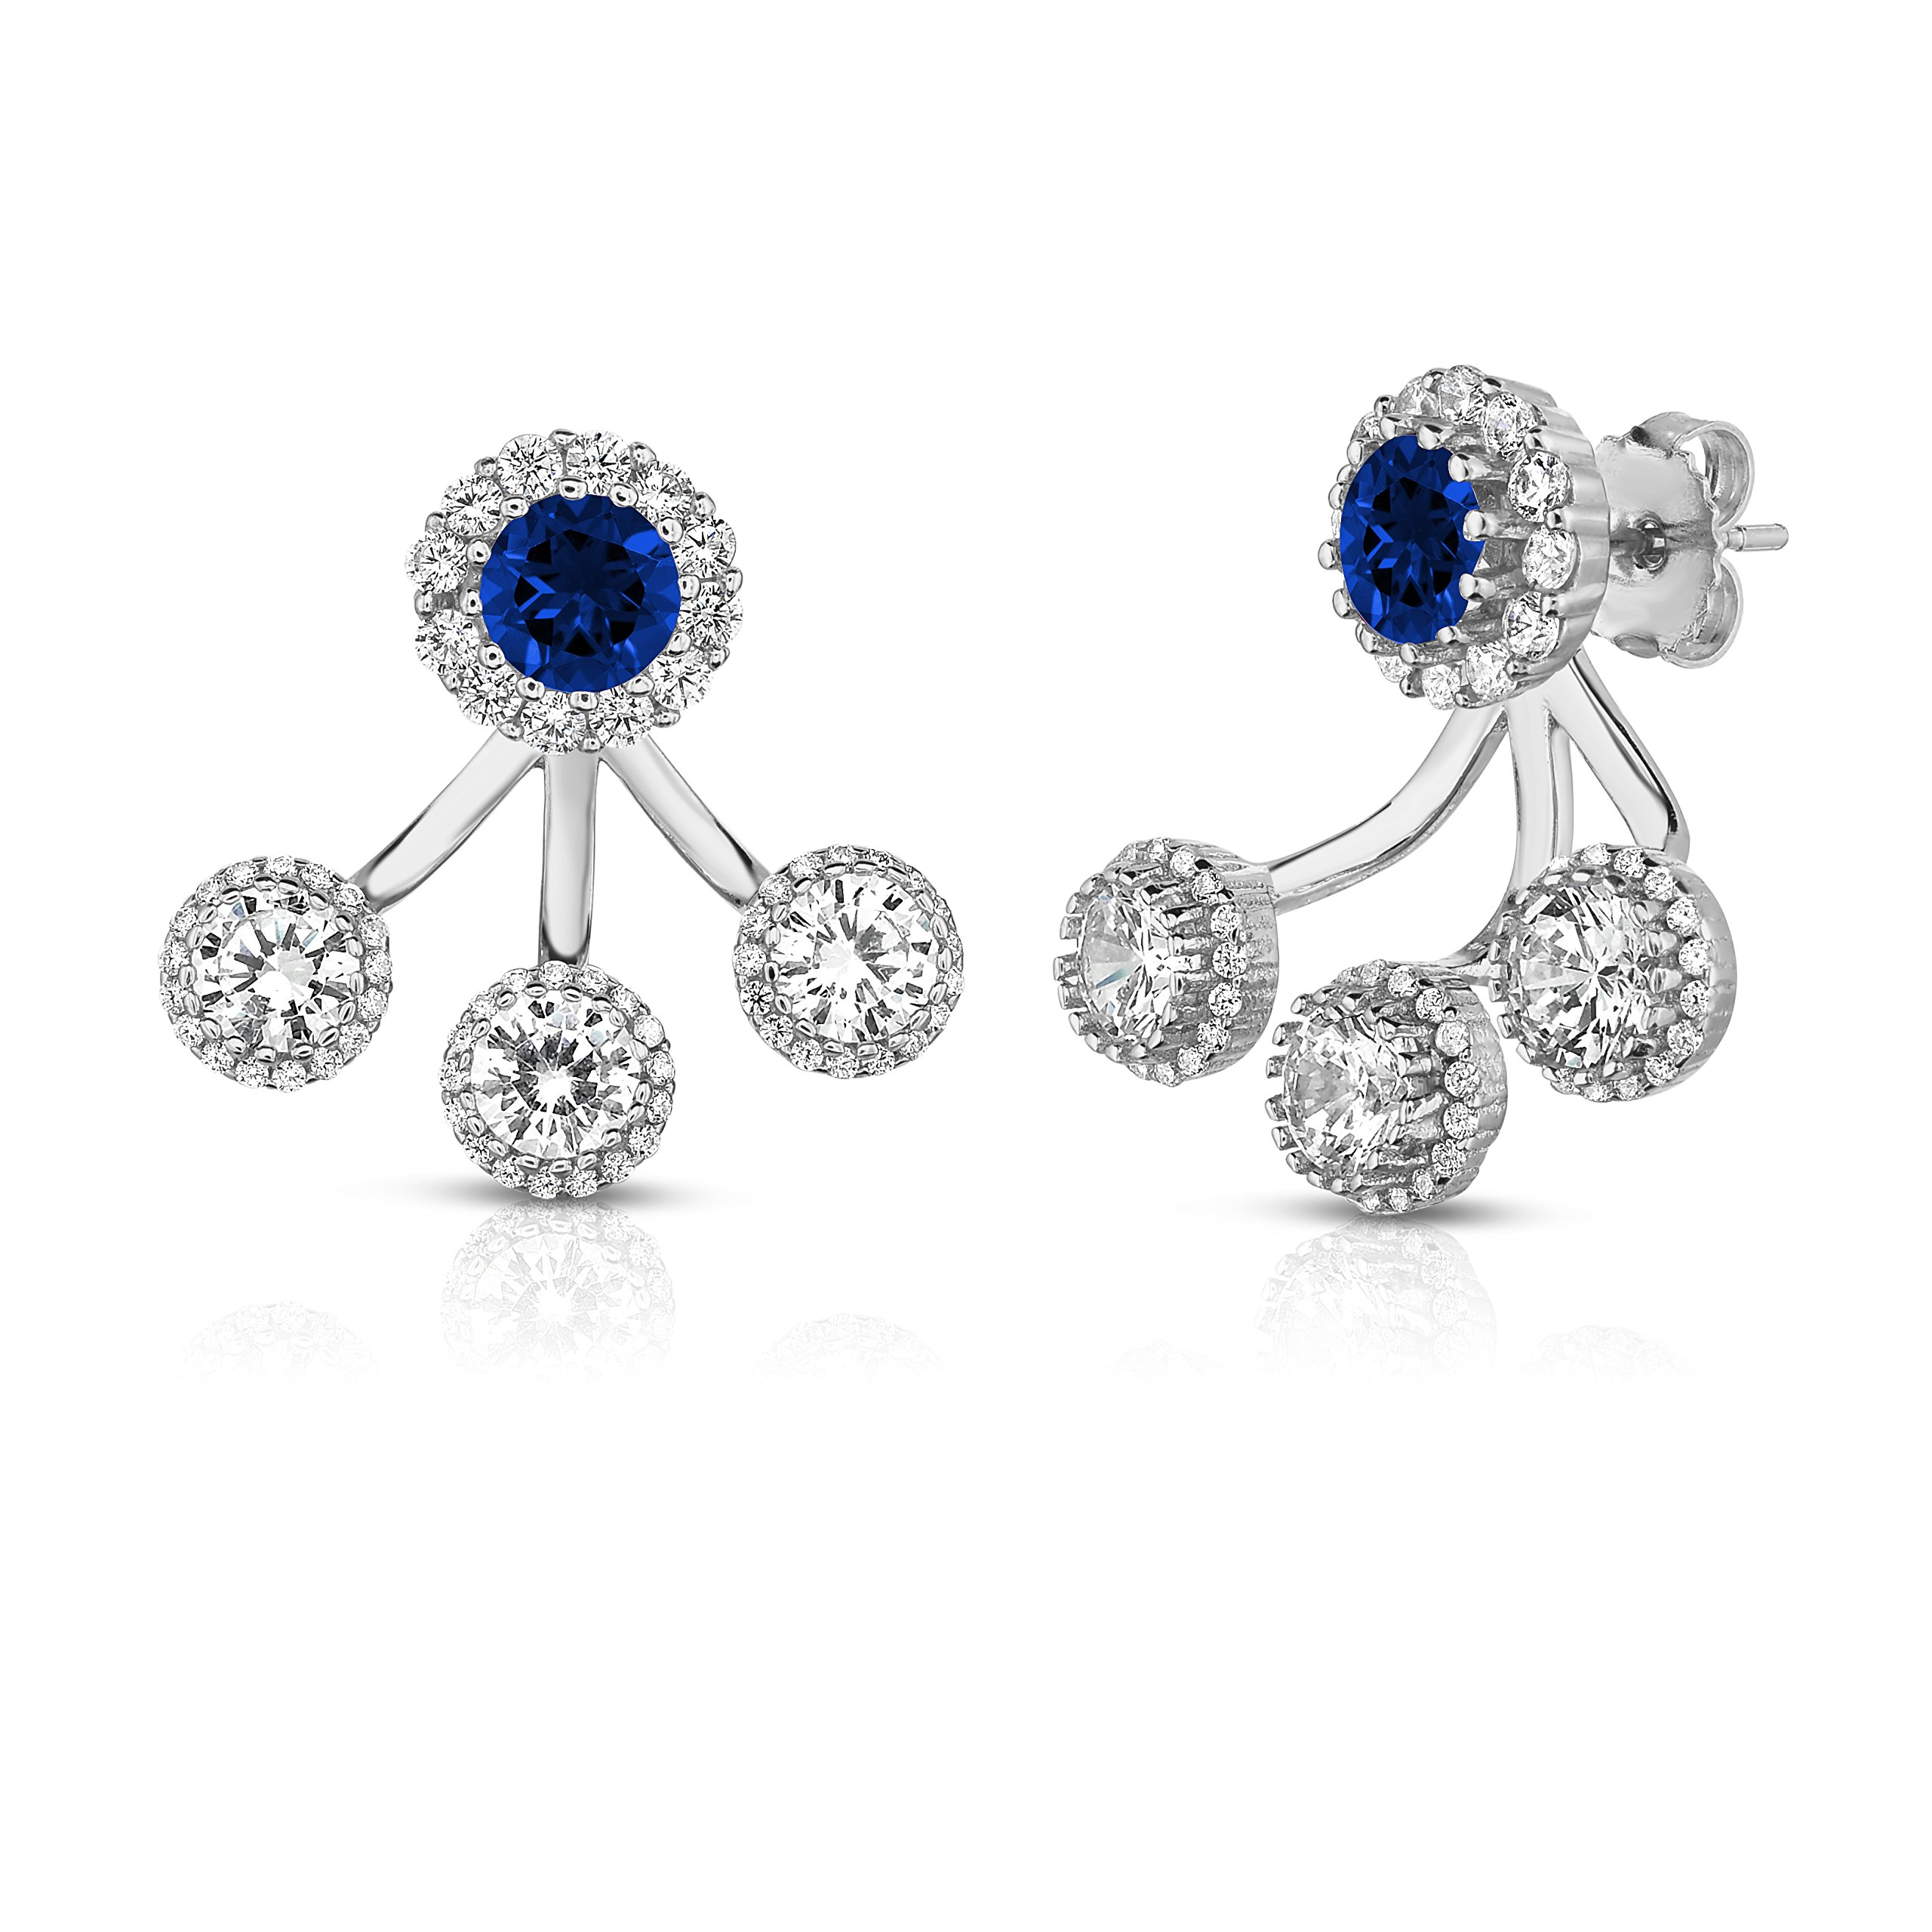 Sterling Silver Front Back 2 in 1 Cubic Zirconia and Created Sapphire Halo Earrings and Ear Jacket Cuff Set. (Natural Silver)